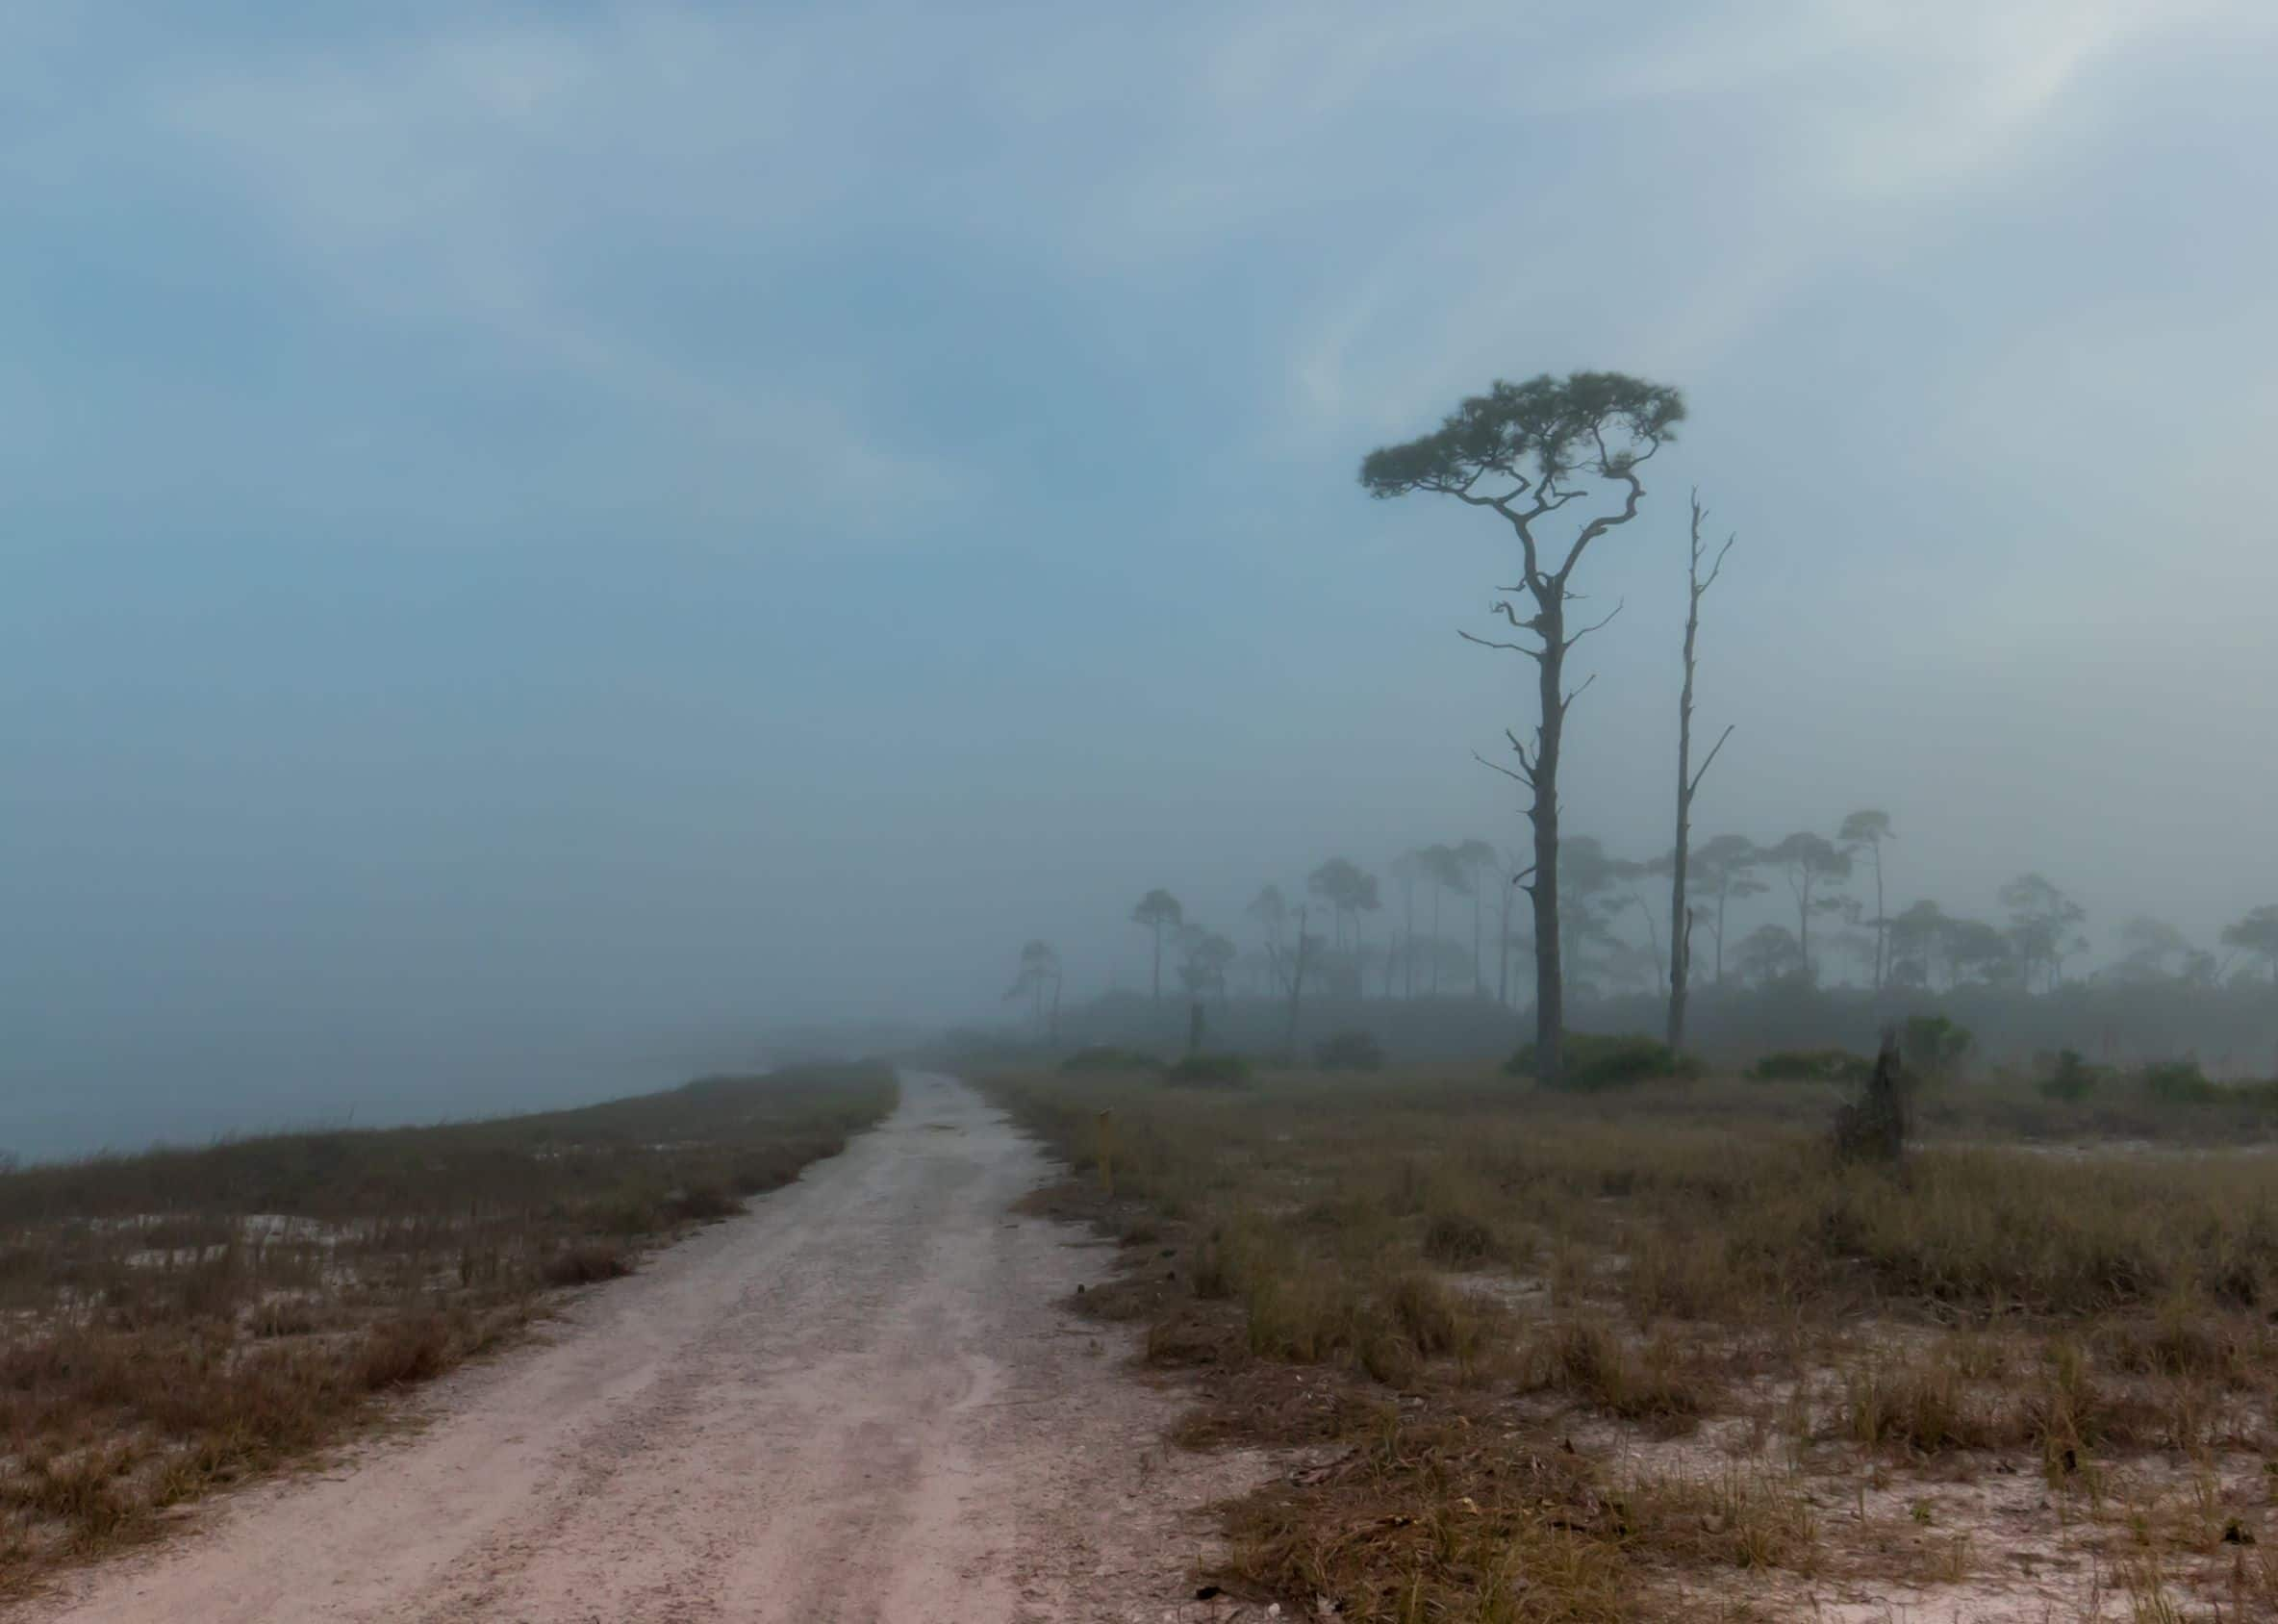 Gravel road with one tall pine tree cuts through Bon Secour Preserve as the fog cover the preserve and fills a turquoise sky.